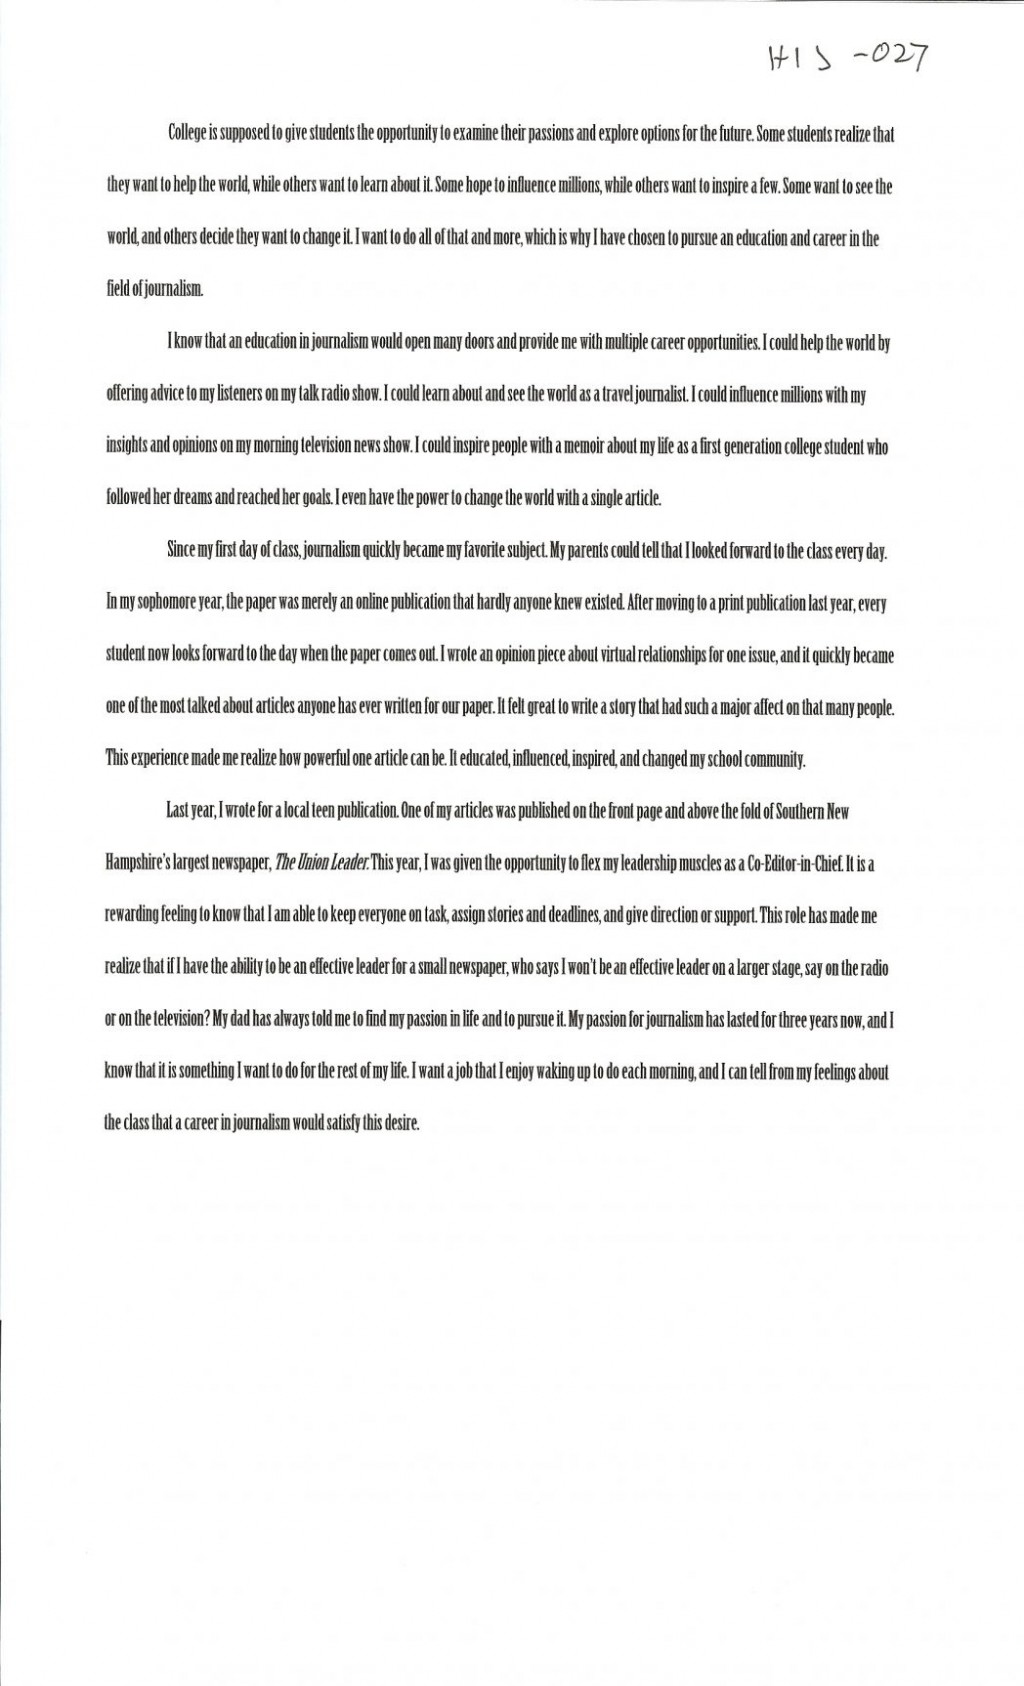 020 Interview Essayss Cover Page For College Admission Essay Samples Free Alexa Serrecchia 1048x1726 Formidable Examples Sample Large